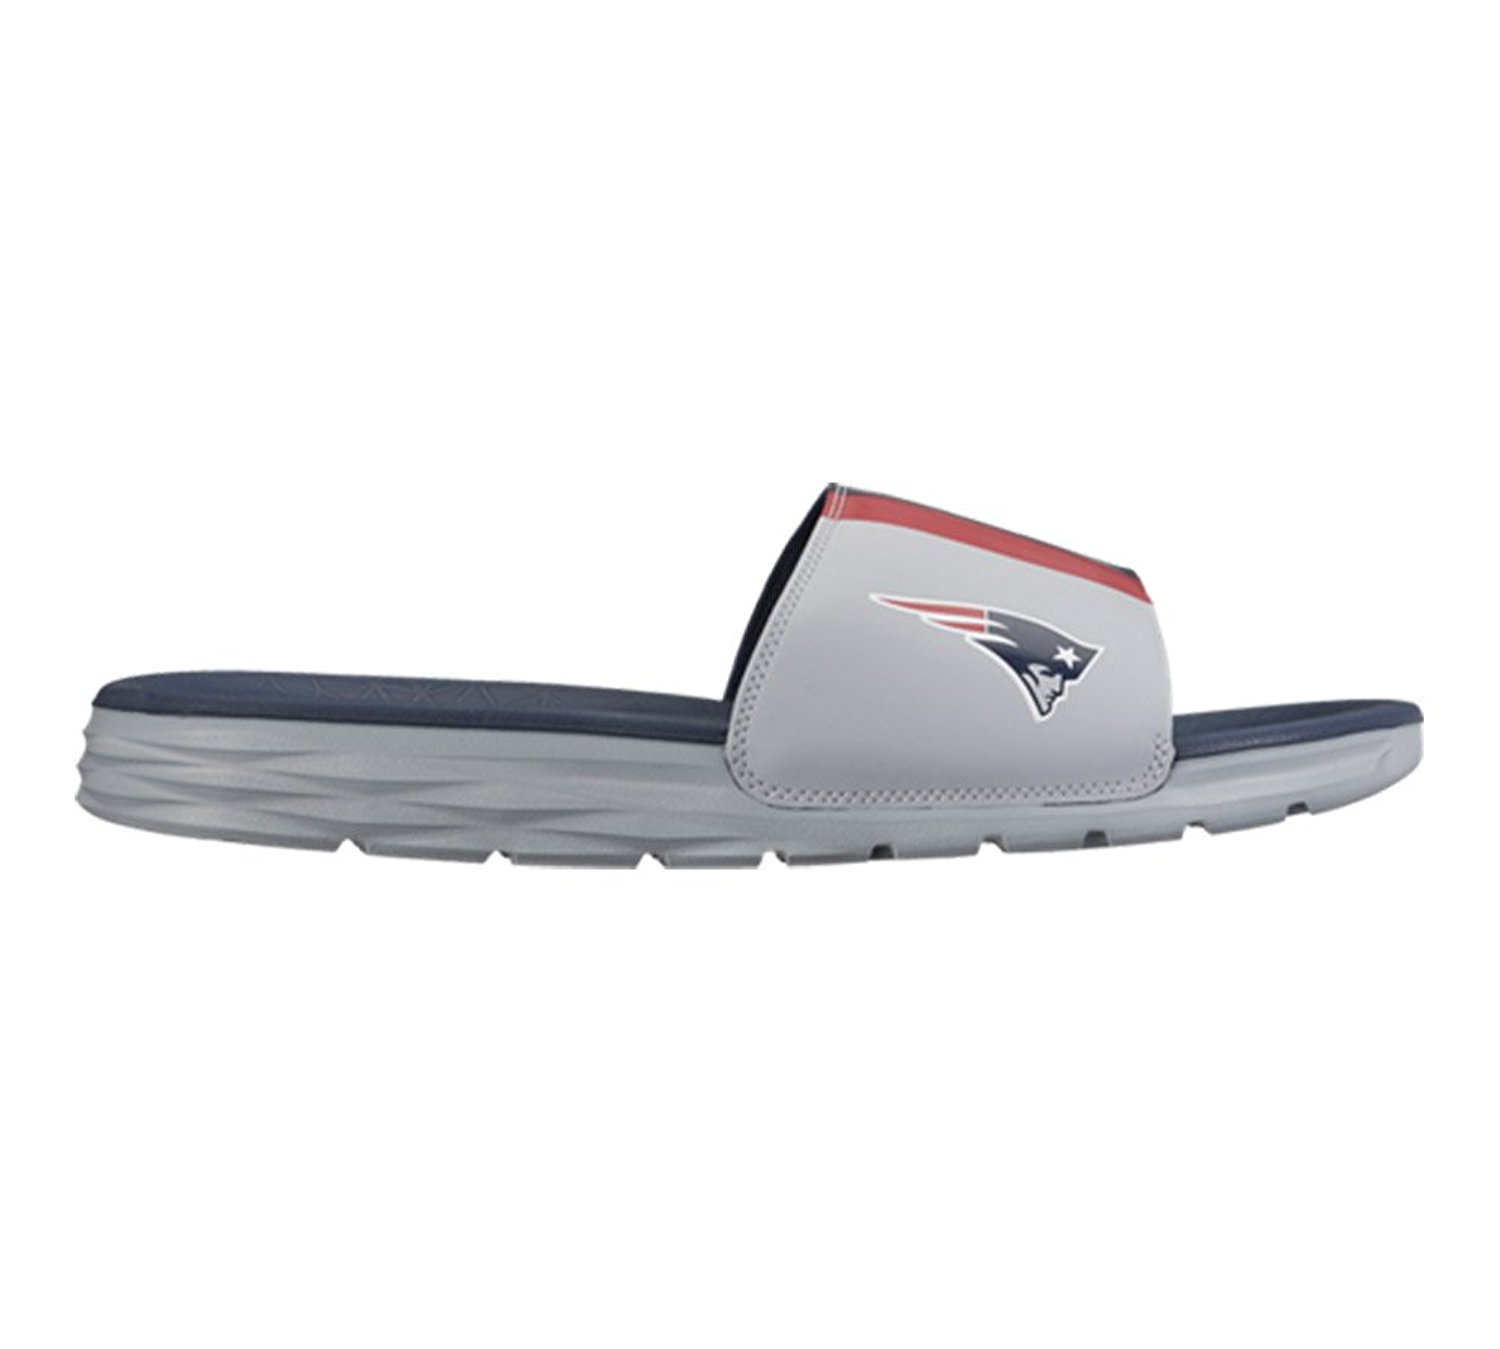 c9921cdef Get Quotations · Nike Men s Benassi Solarsoft NFL Team Slide